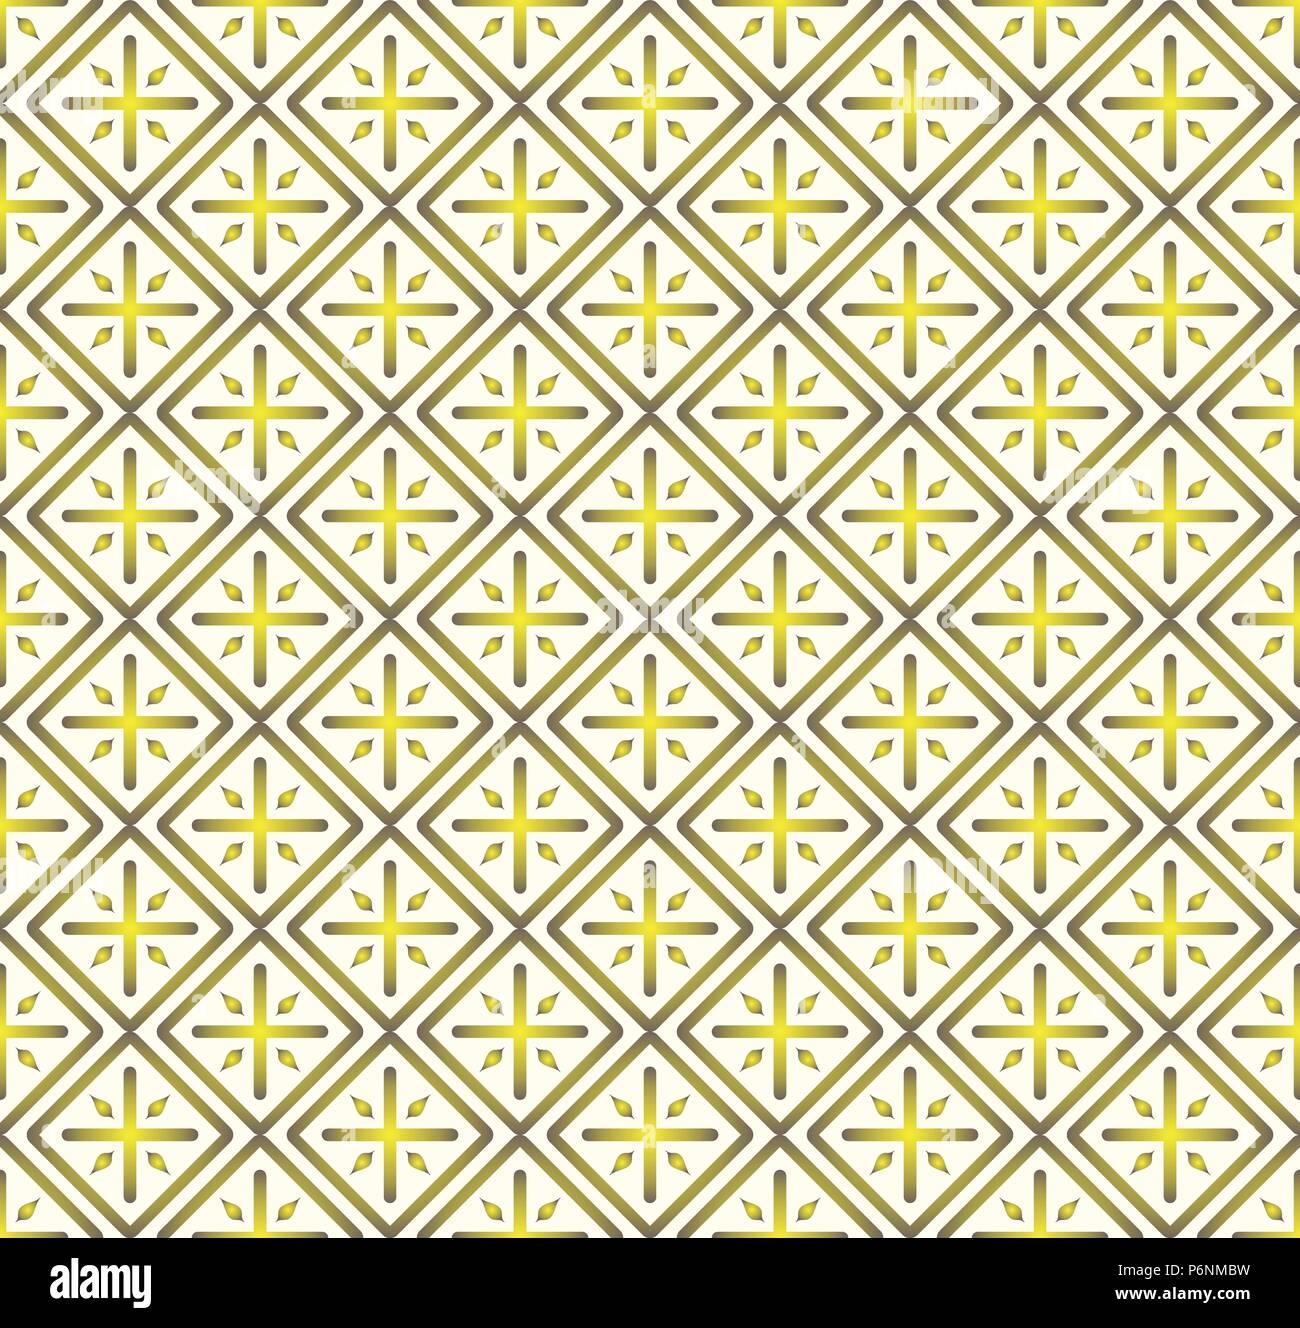 Yellow Plus sign and rectangle shape seamless pattern. Abstract pattern style for graphic or modern design. - Stock Vector